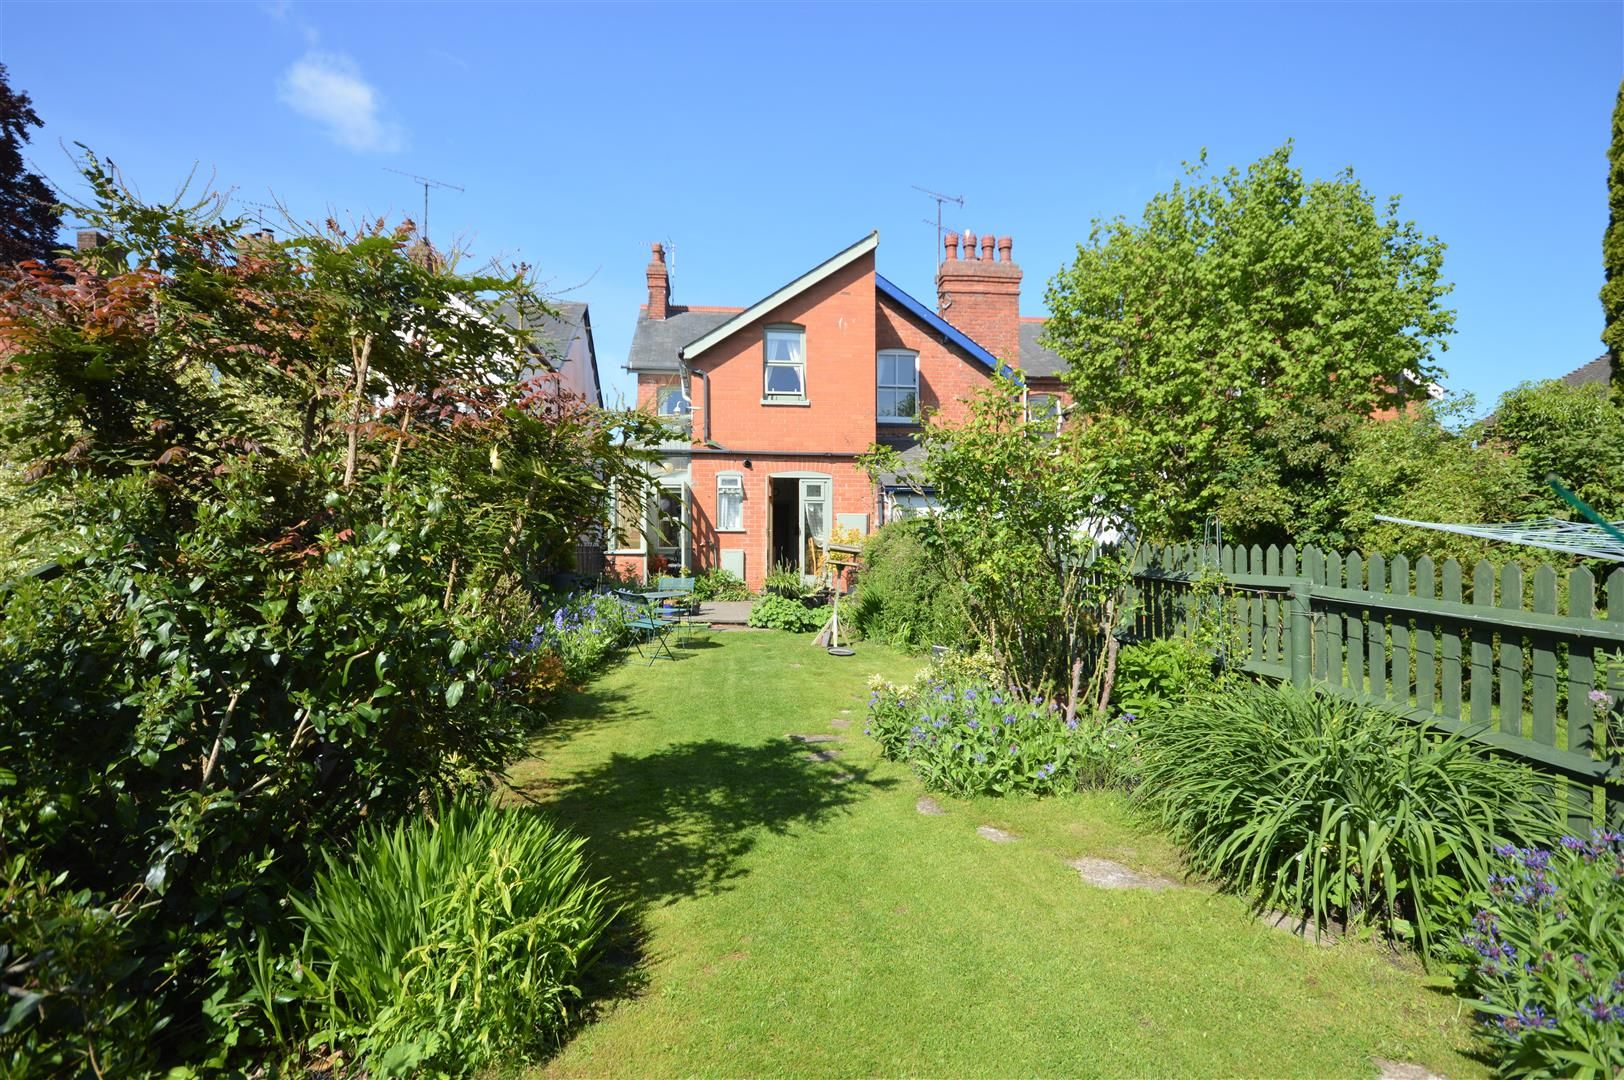 3 bed end of terrace for sale in Leominster 15